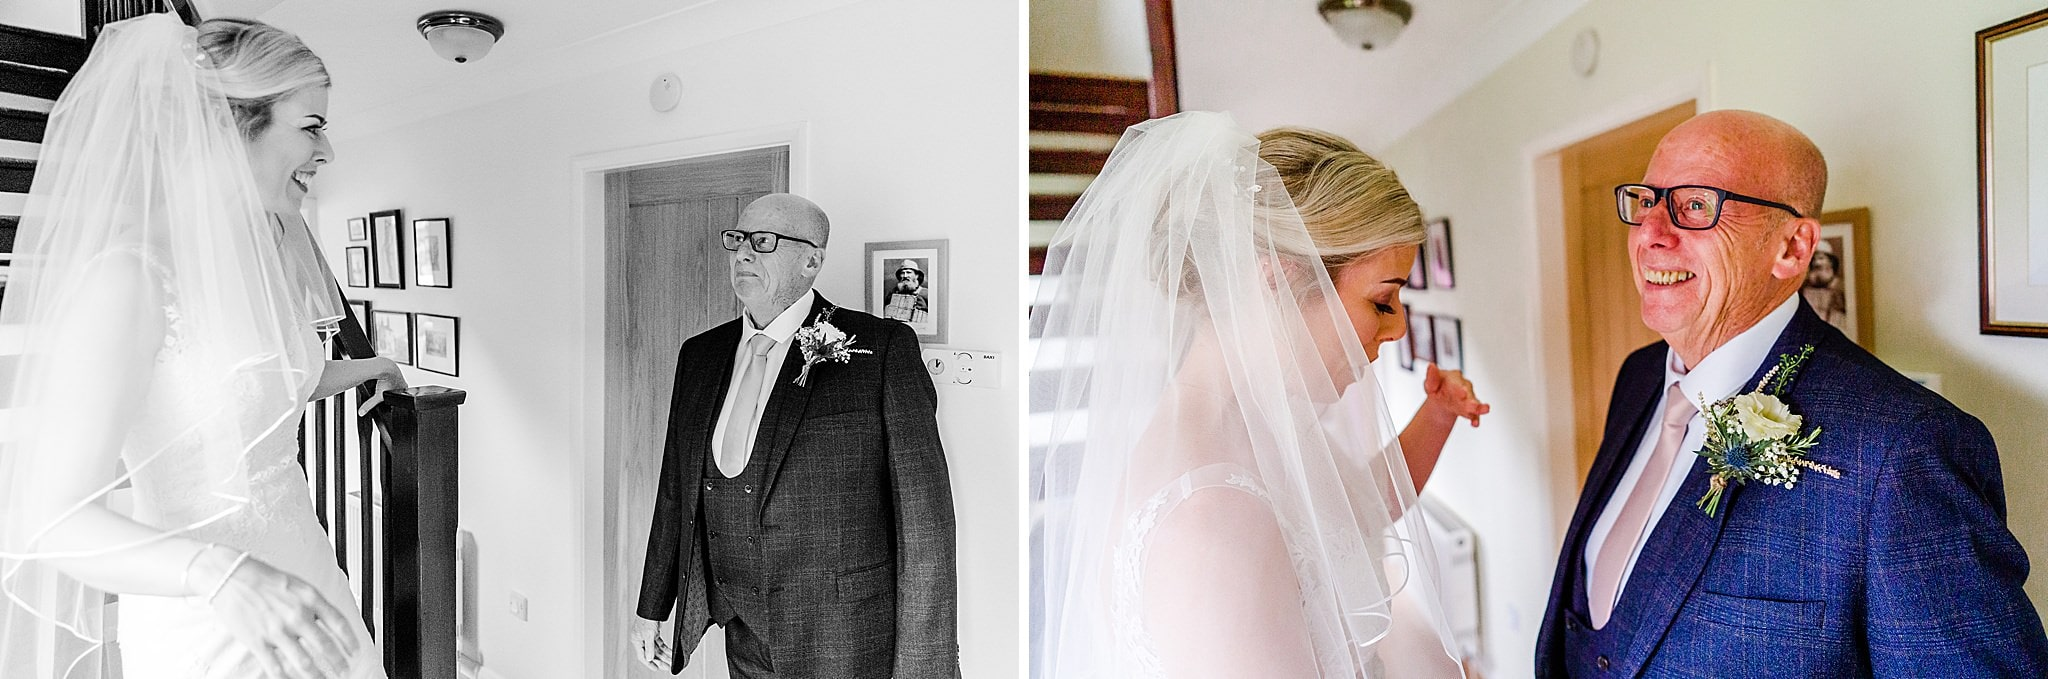 Bride's dad has a tear in his eye when he sees the bride in her dress